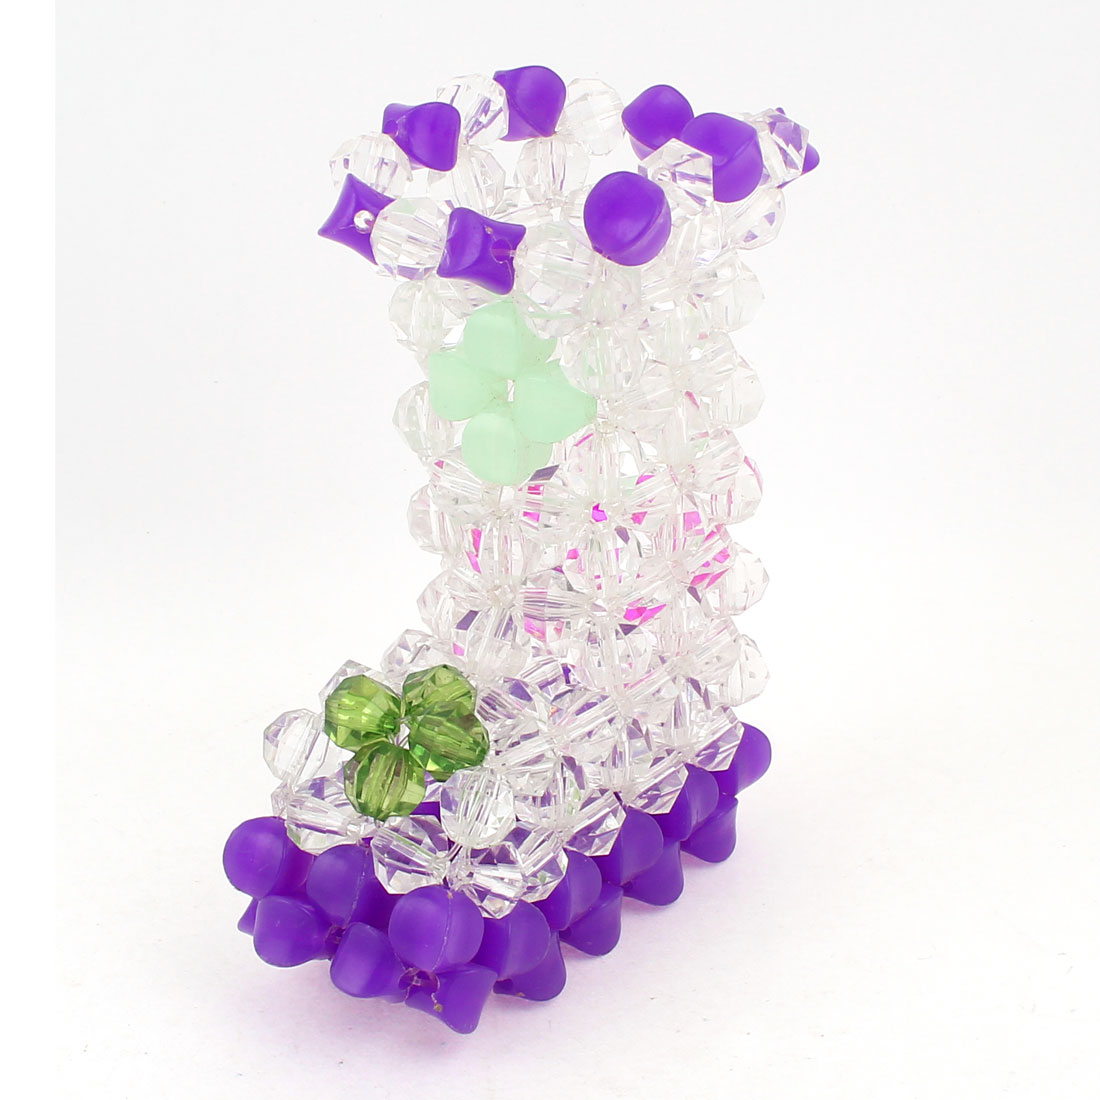 Purple Clear Boot Shaped Handcraft Plastic Crystal Beads Vase Craft Room Decoration 4.7""